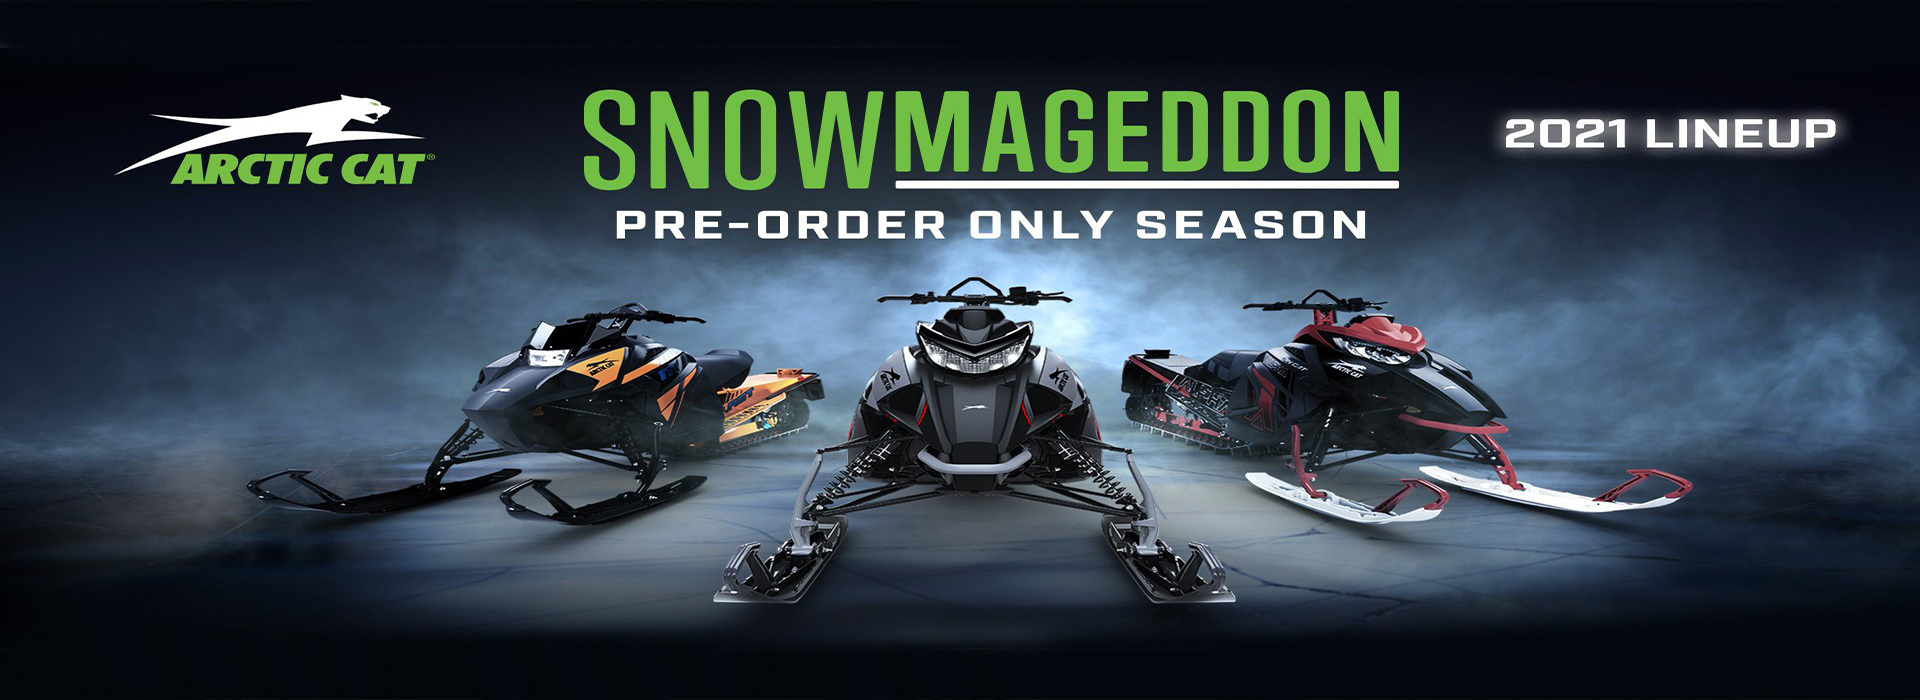 2021 ARCTIC CAT SLEDS